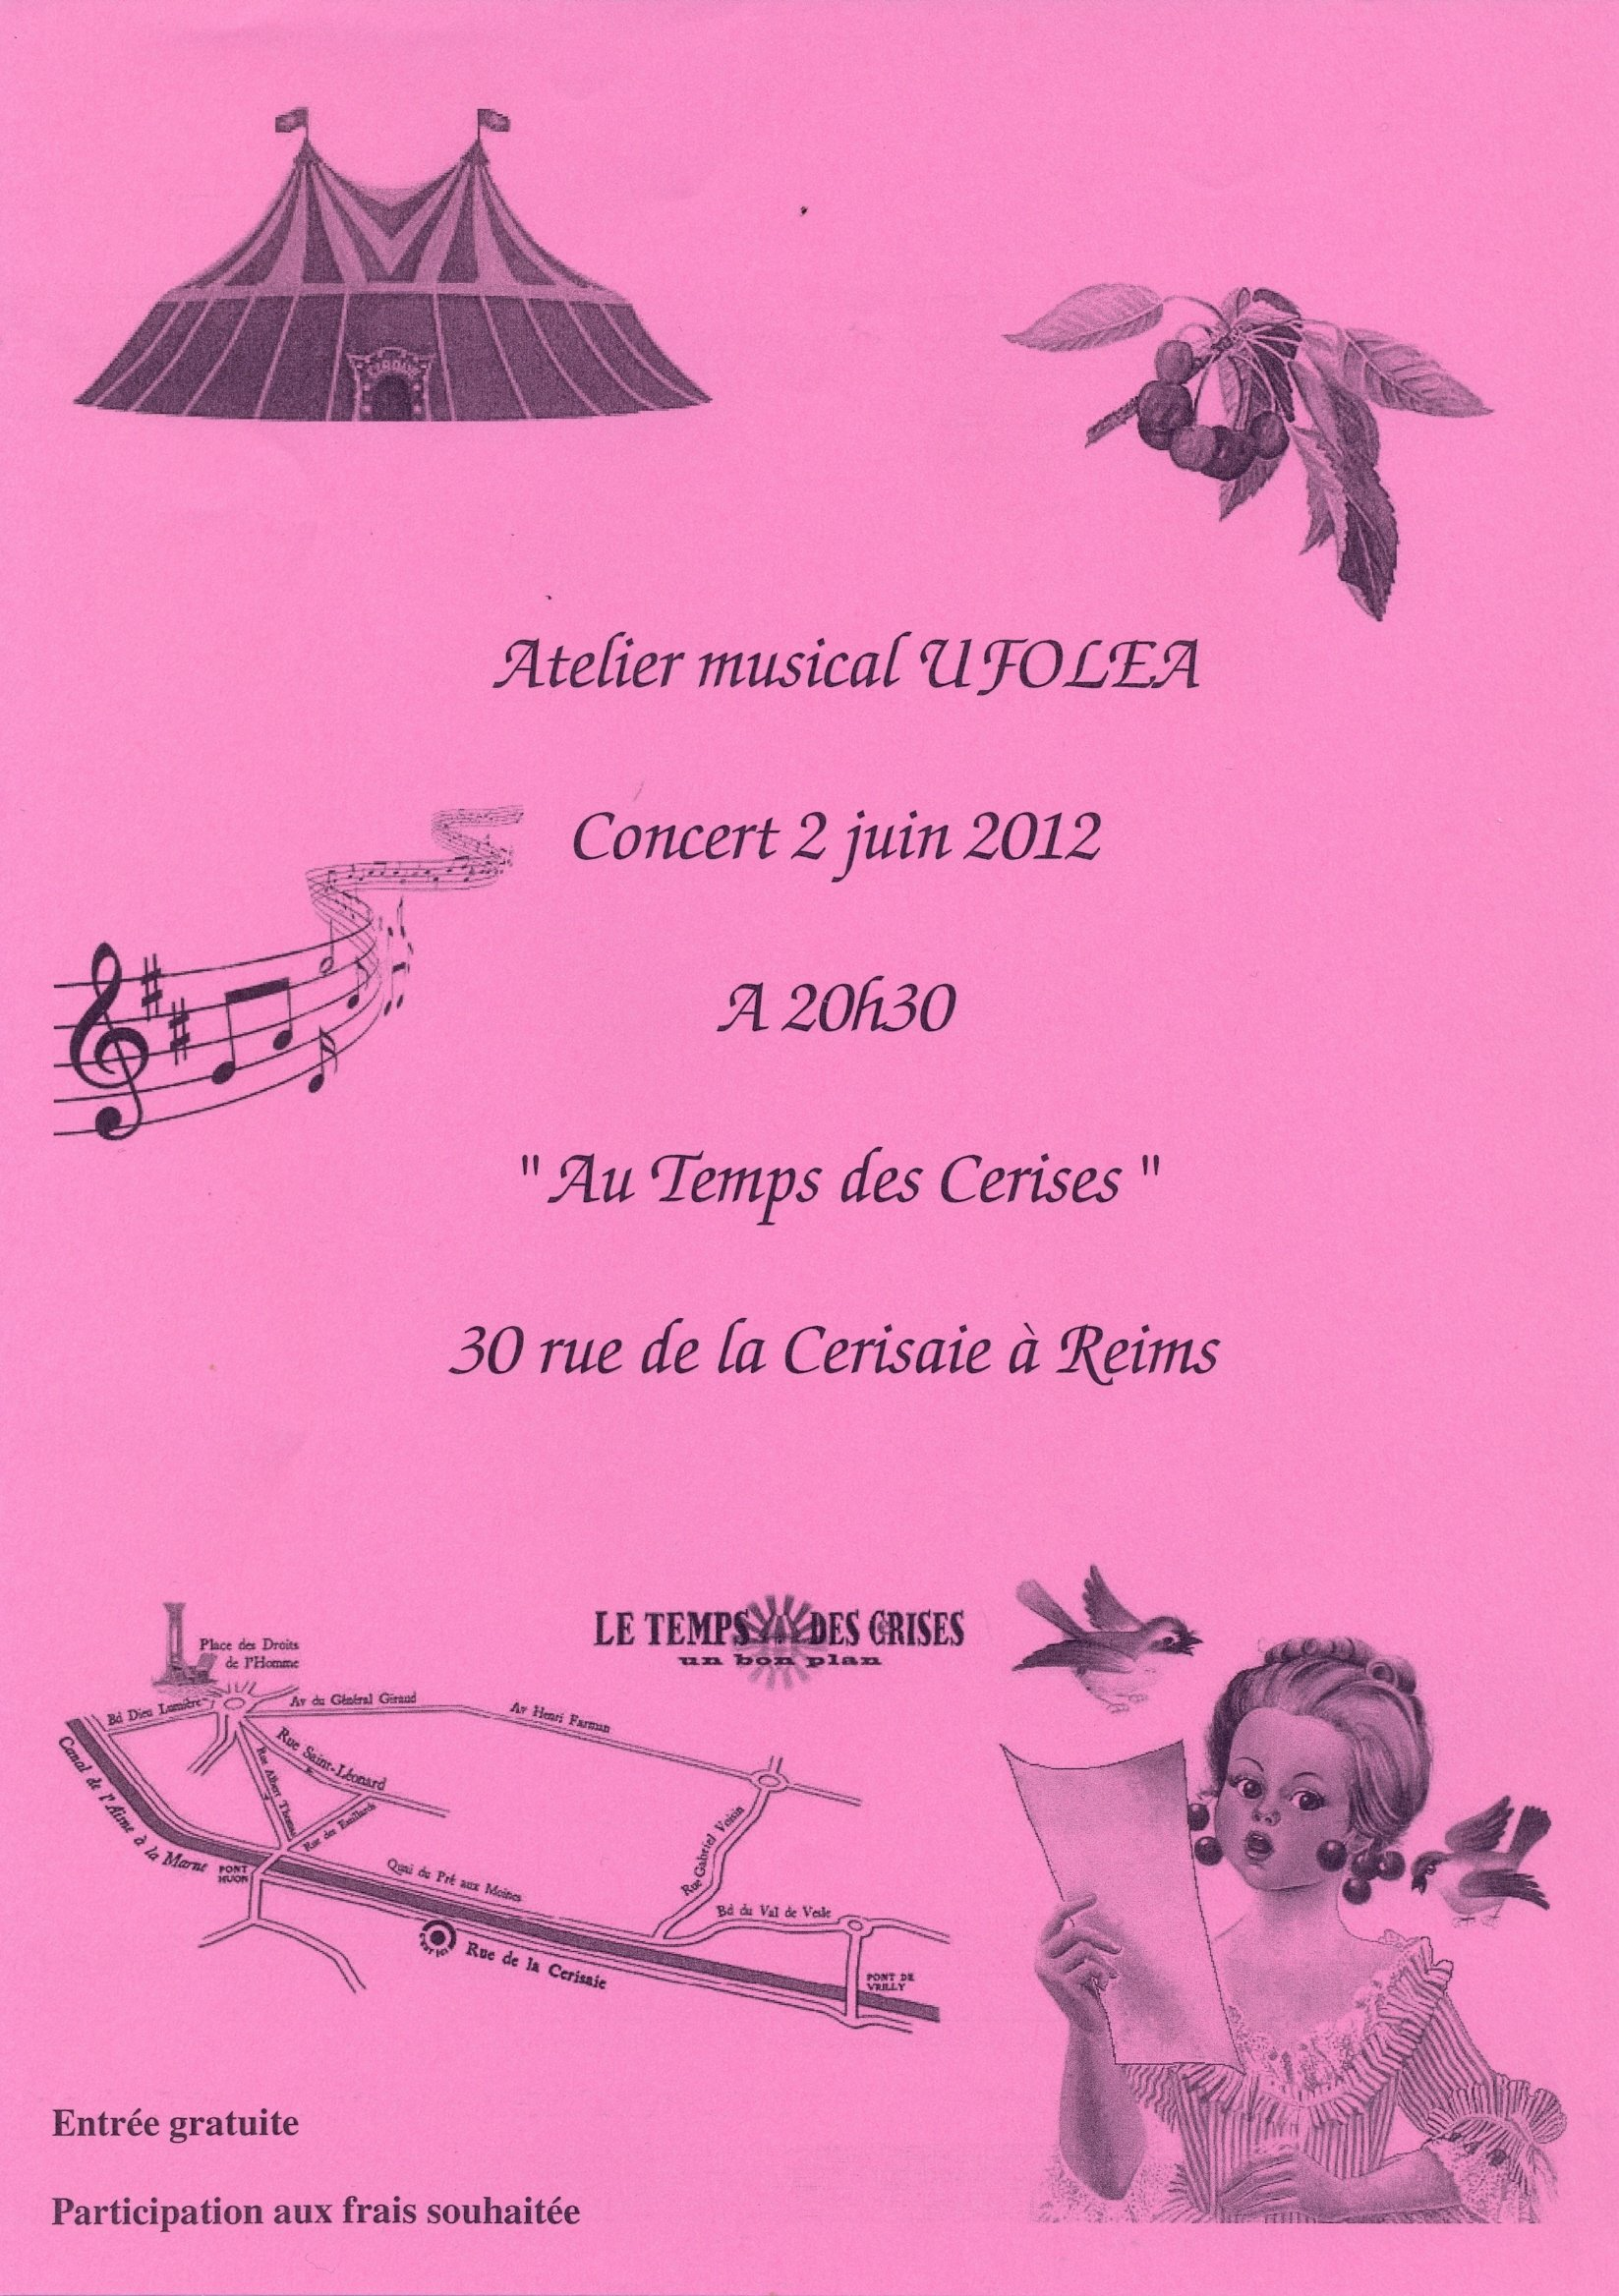 http://ateliermusicalufolea.unblog.fr/files/2012/05/Tract-rose.jpg